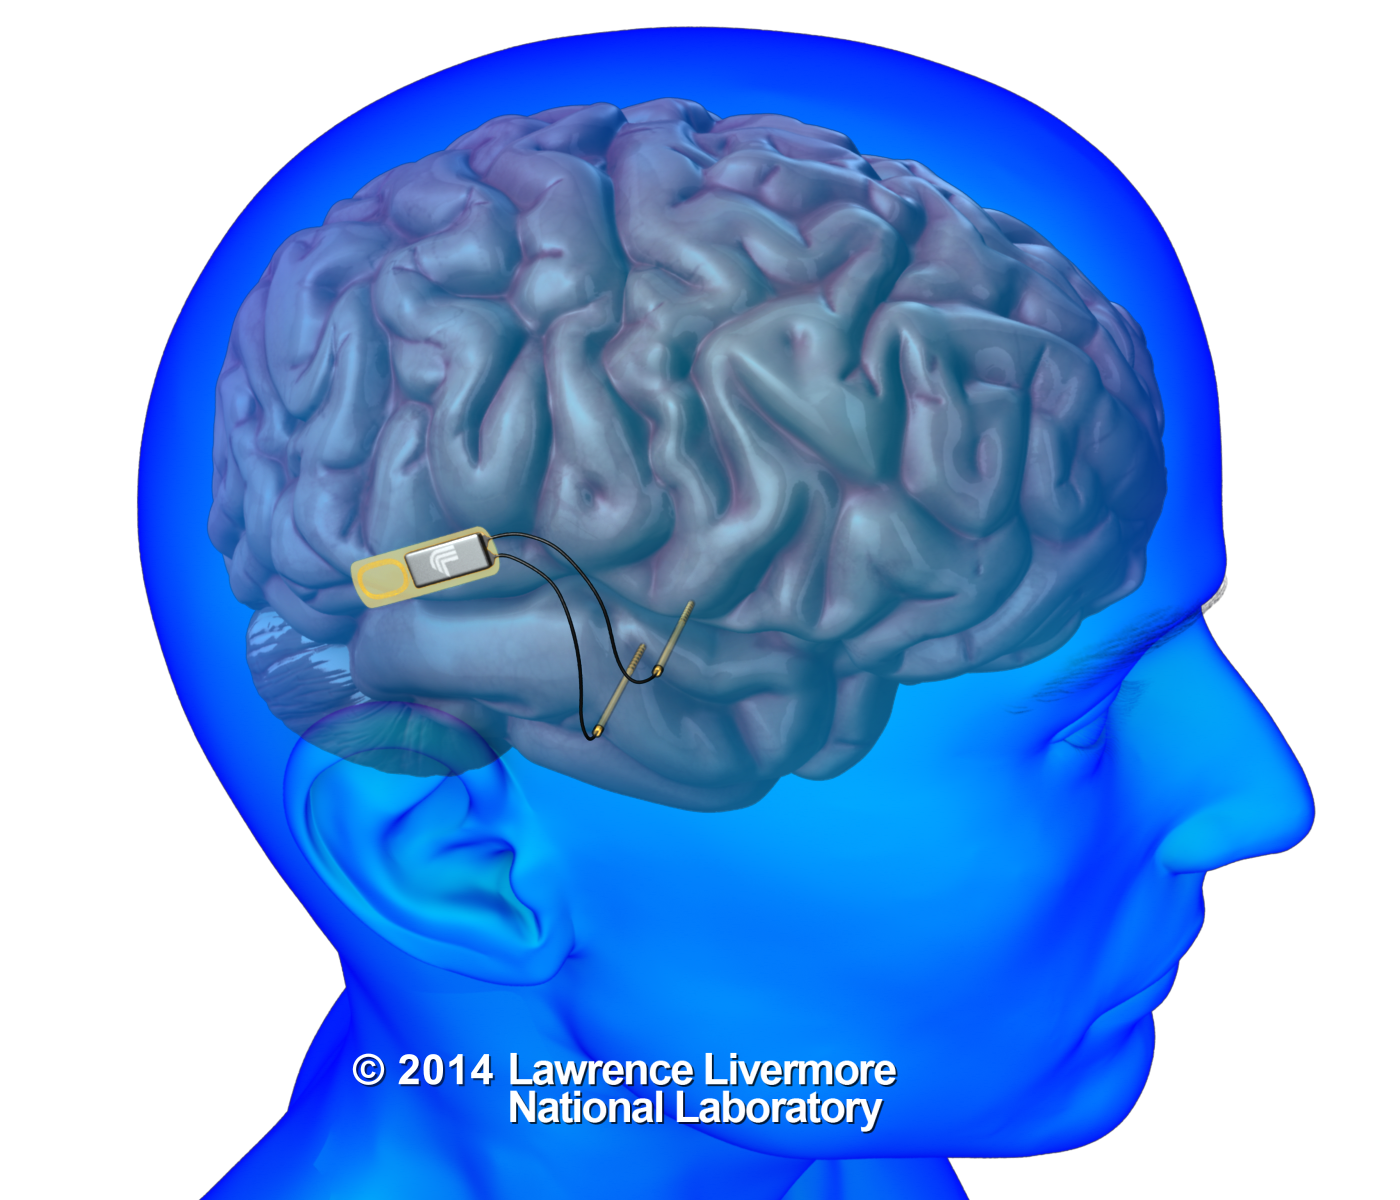 Implantable brain device could restore lost memories, help create new ones